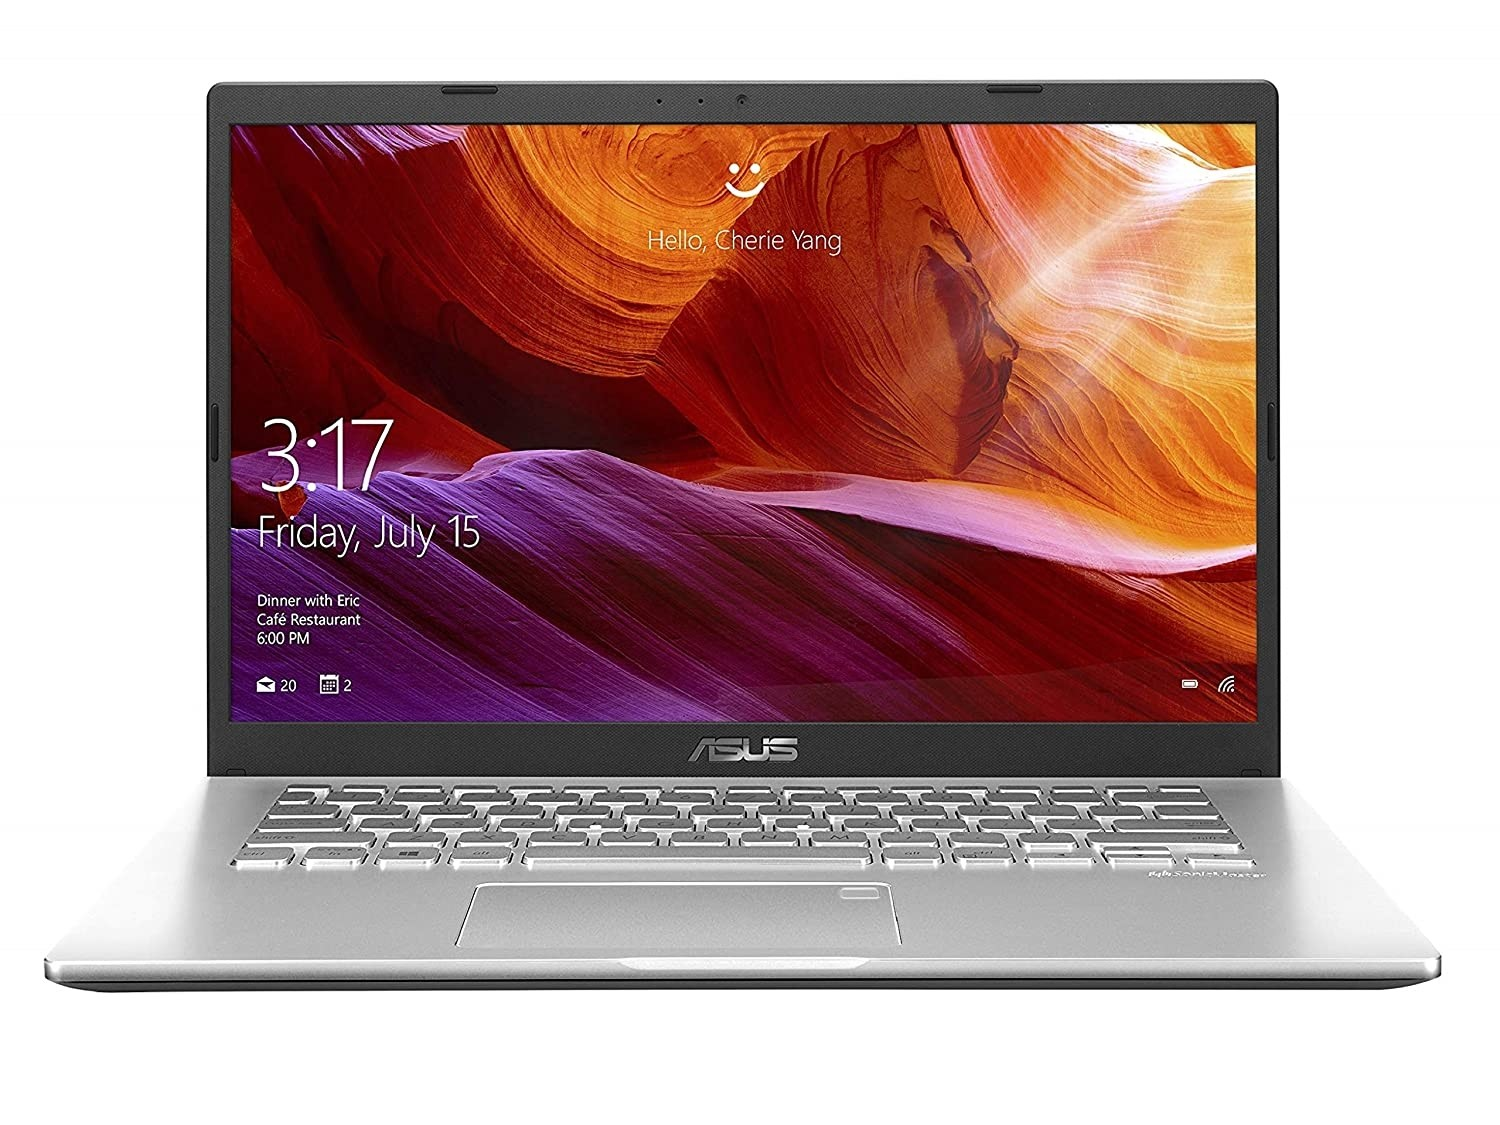 Refurbished laptops & desktops - Asus Vivobook 14 Intel Core I3-1005G1 10TH Gen 14-Inch FHD Compact And Light Laptop (8GB RAM/1TB HDD + 128GB Nvme SSD/Windows 10/Integrated Graphics/T